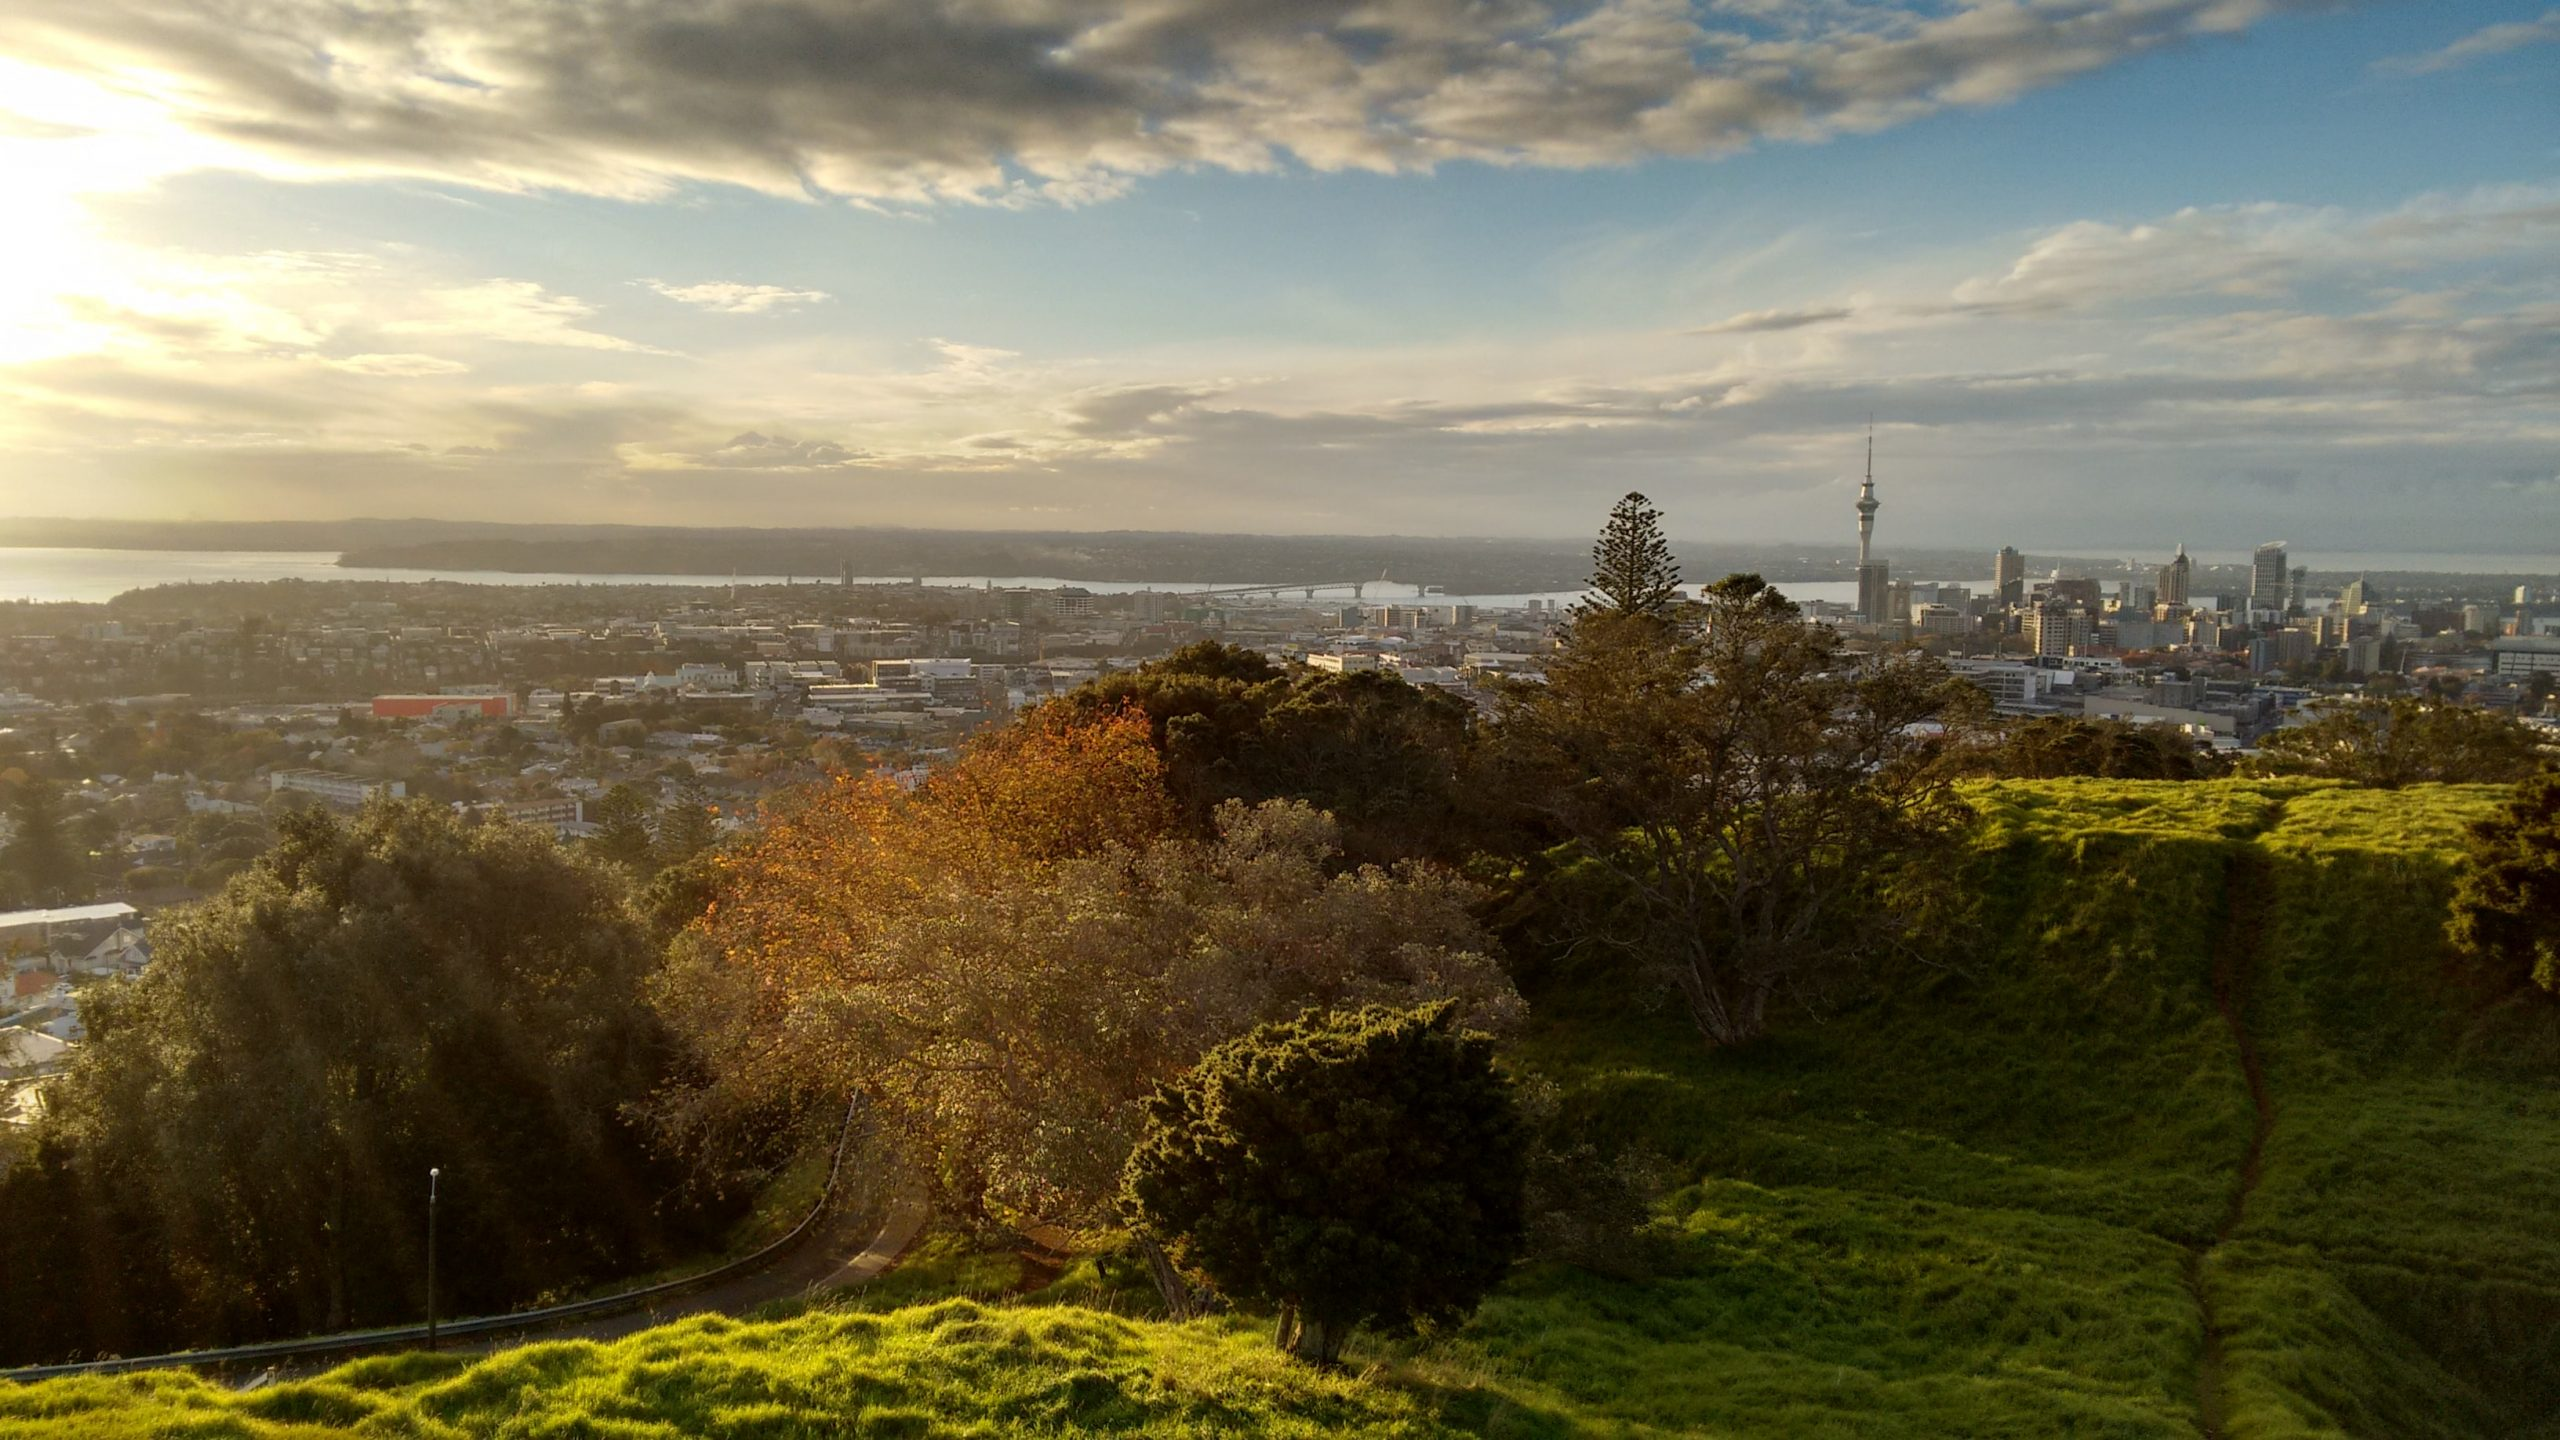 Urban Trees and the Auckland Ngāhere Strategy